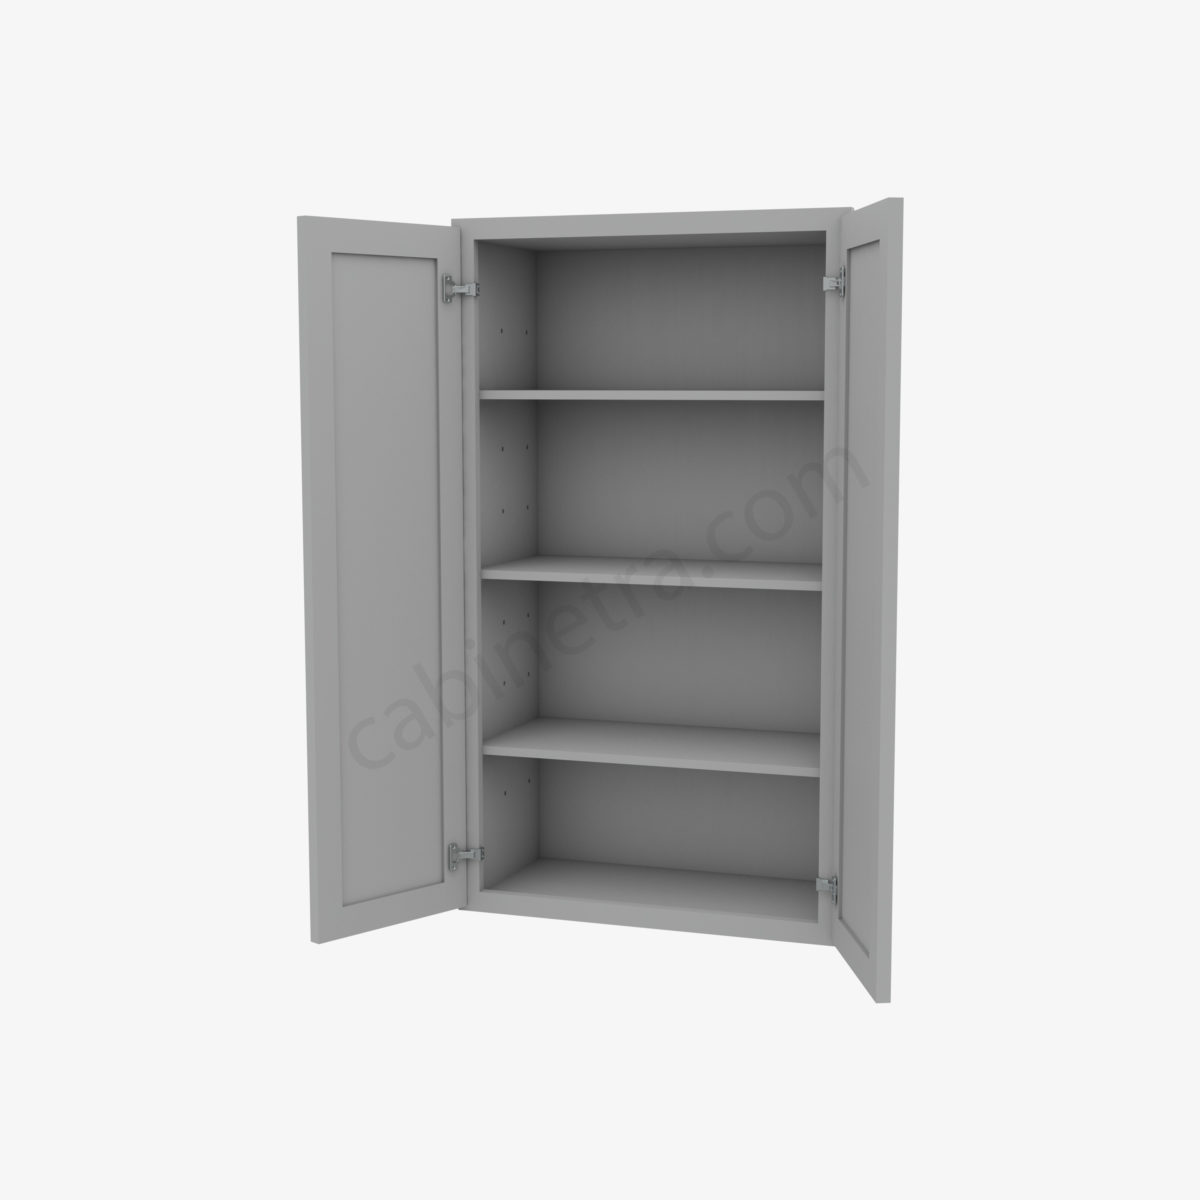 AB W2442B 5 Forevermark Lait Gray Shaker Cabinetra scaled